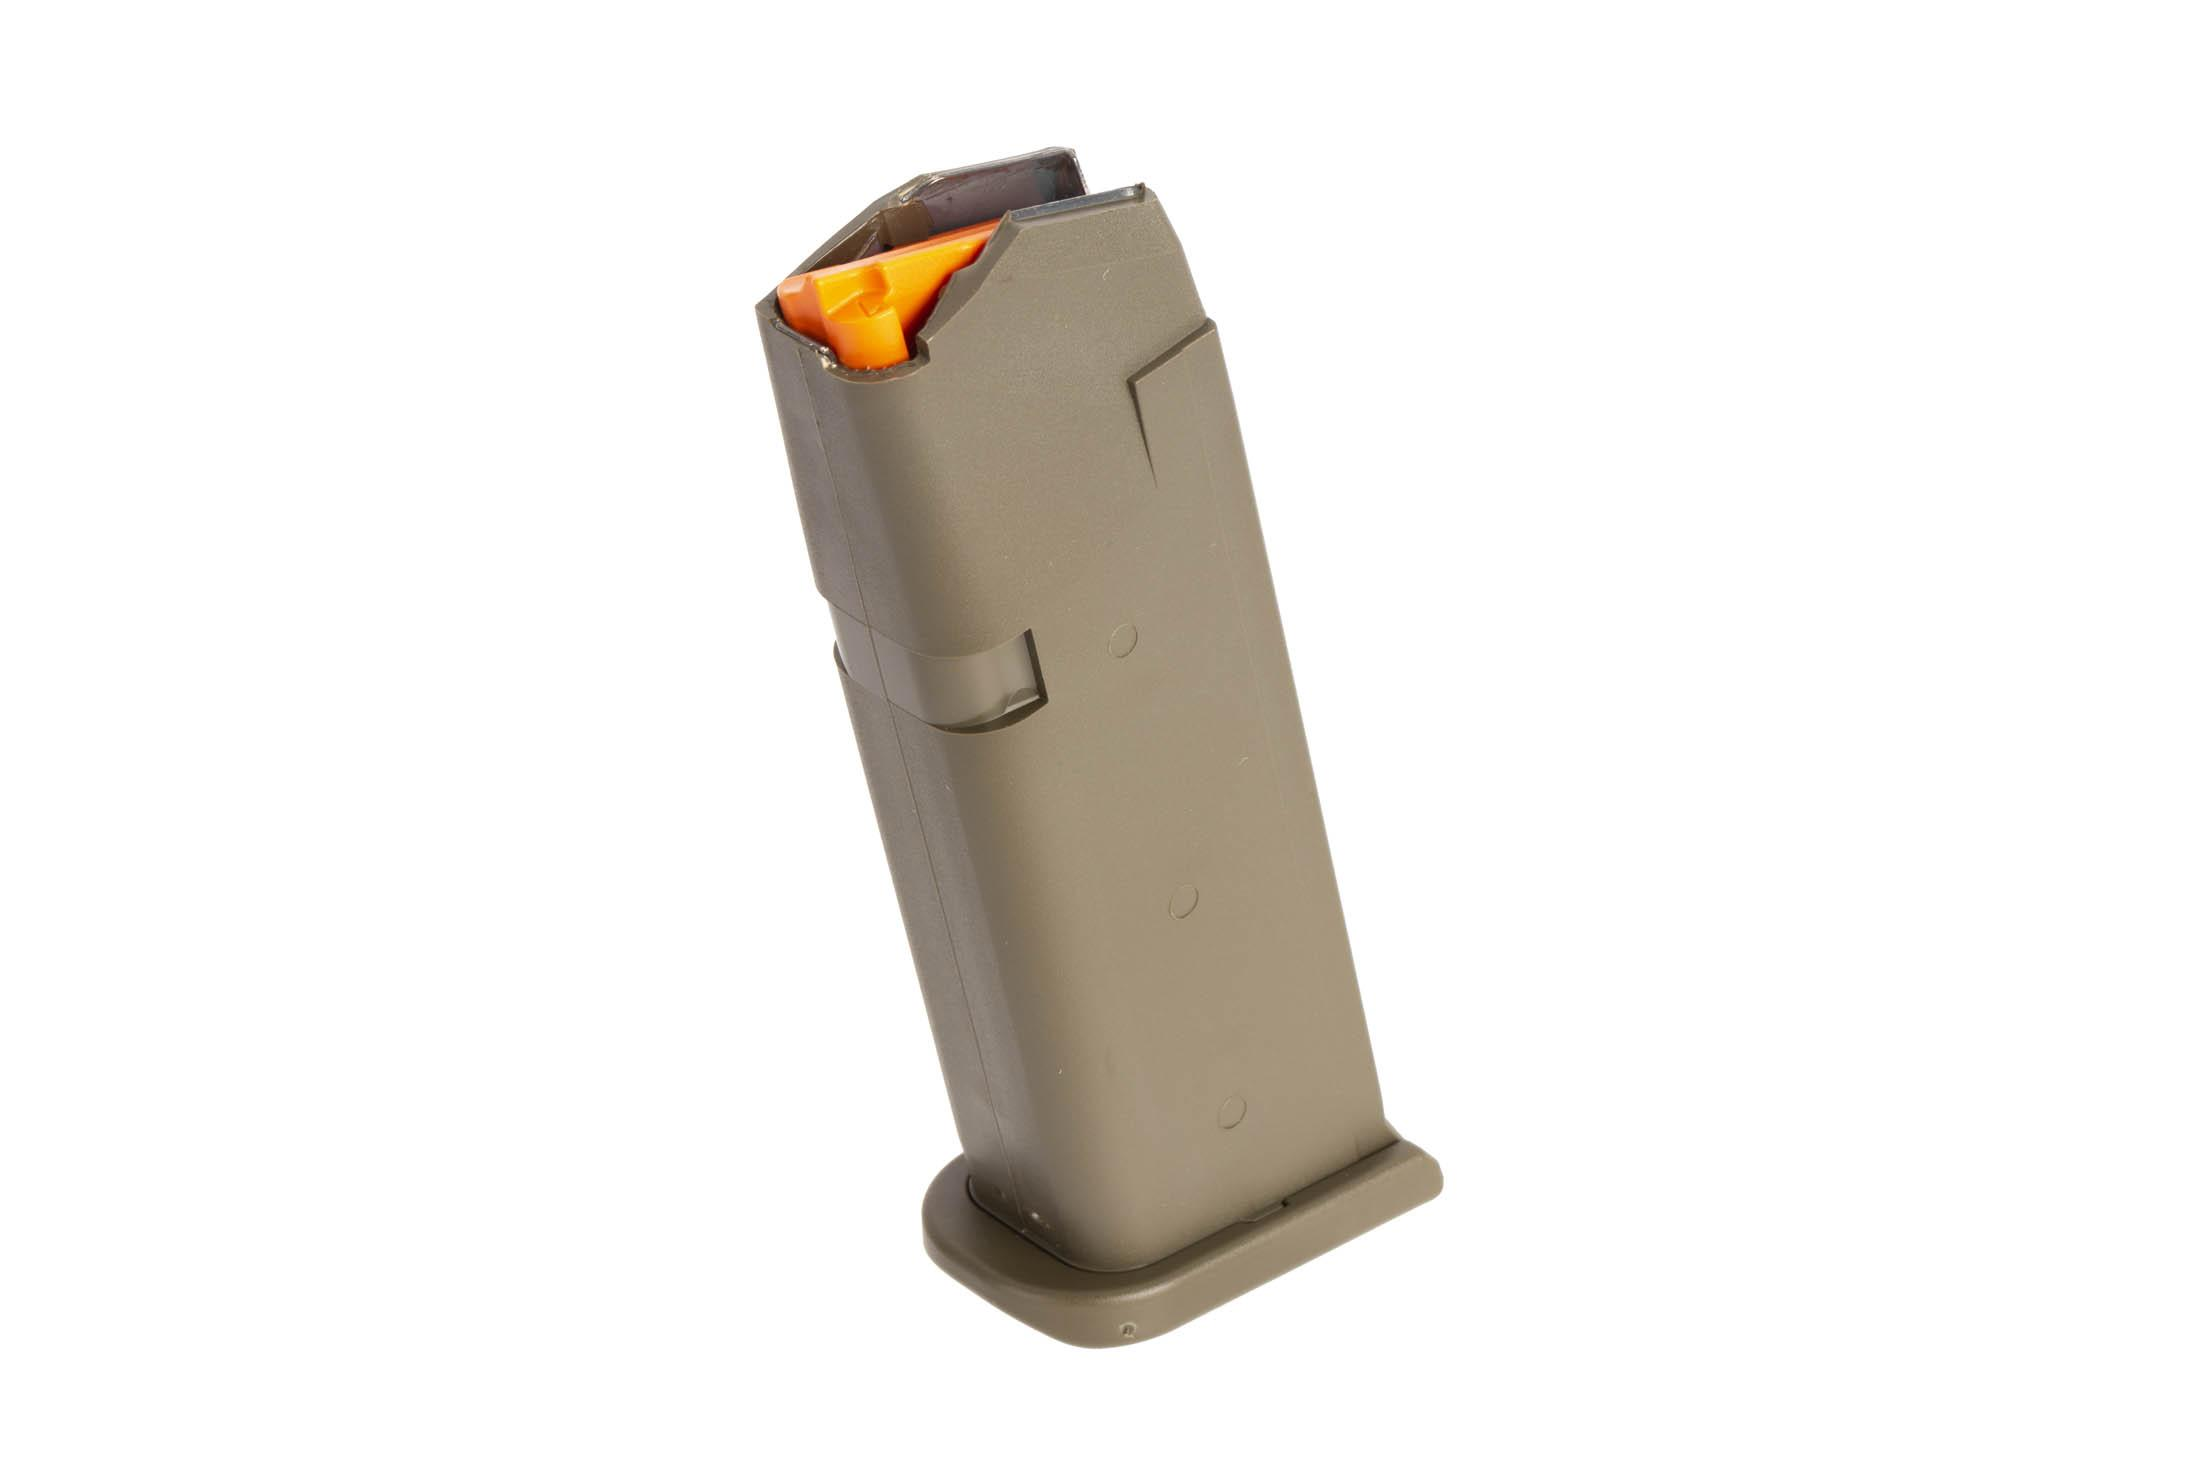 Glock odg G19 Gen 5 15-round 9mm steel reinforced polymer magazine with high visibility follower and ambi mag catch cuts